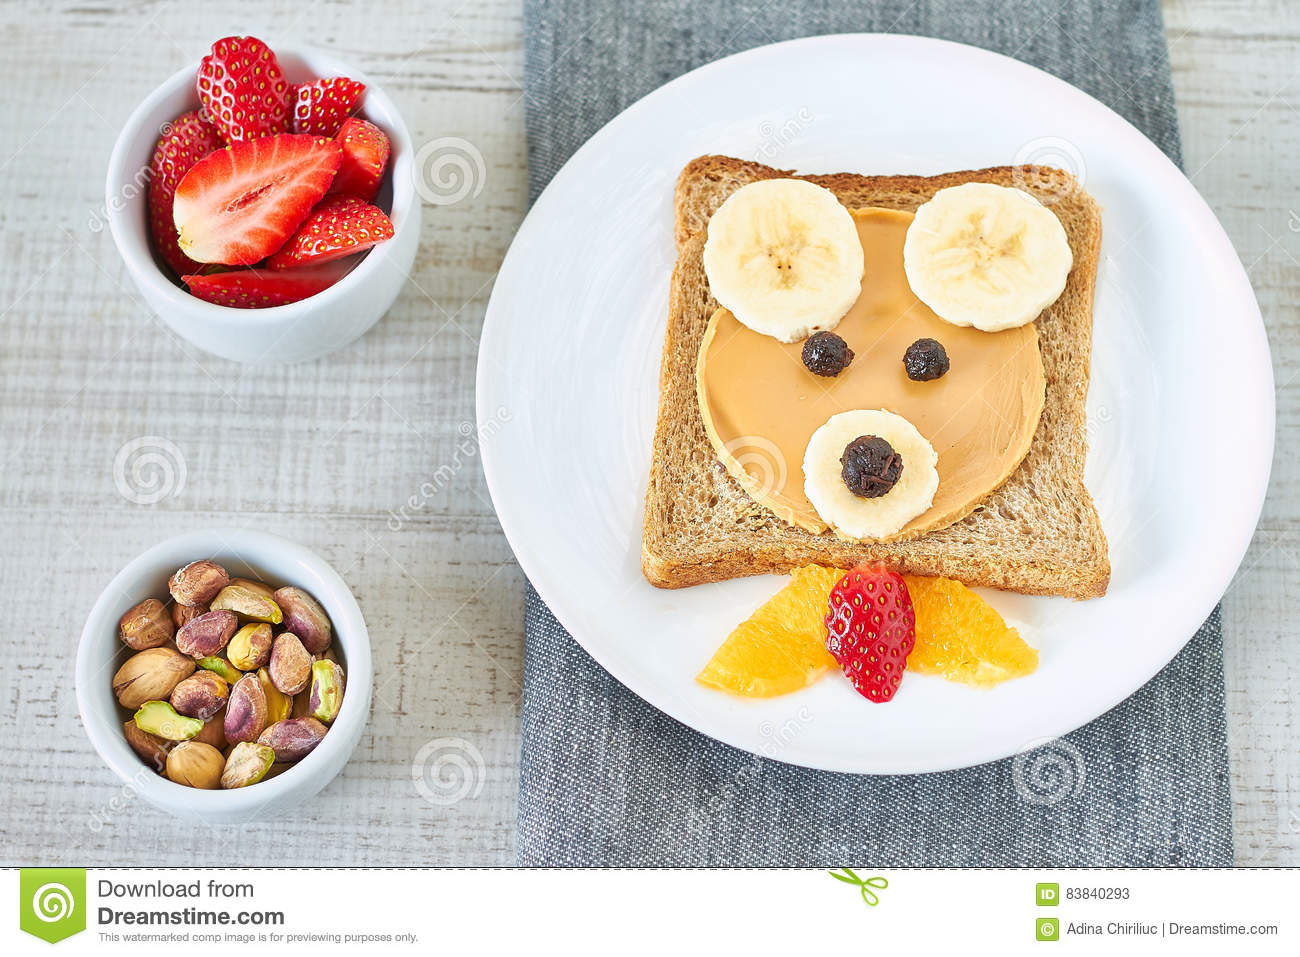 Healthy And Fun Snack For Kids Stock Image - Image of banana